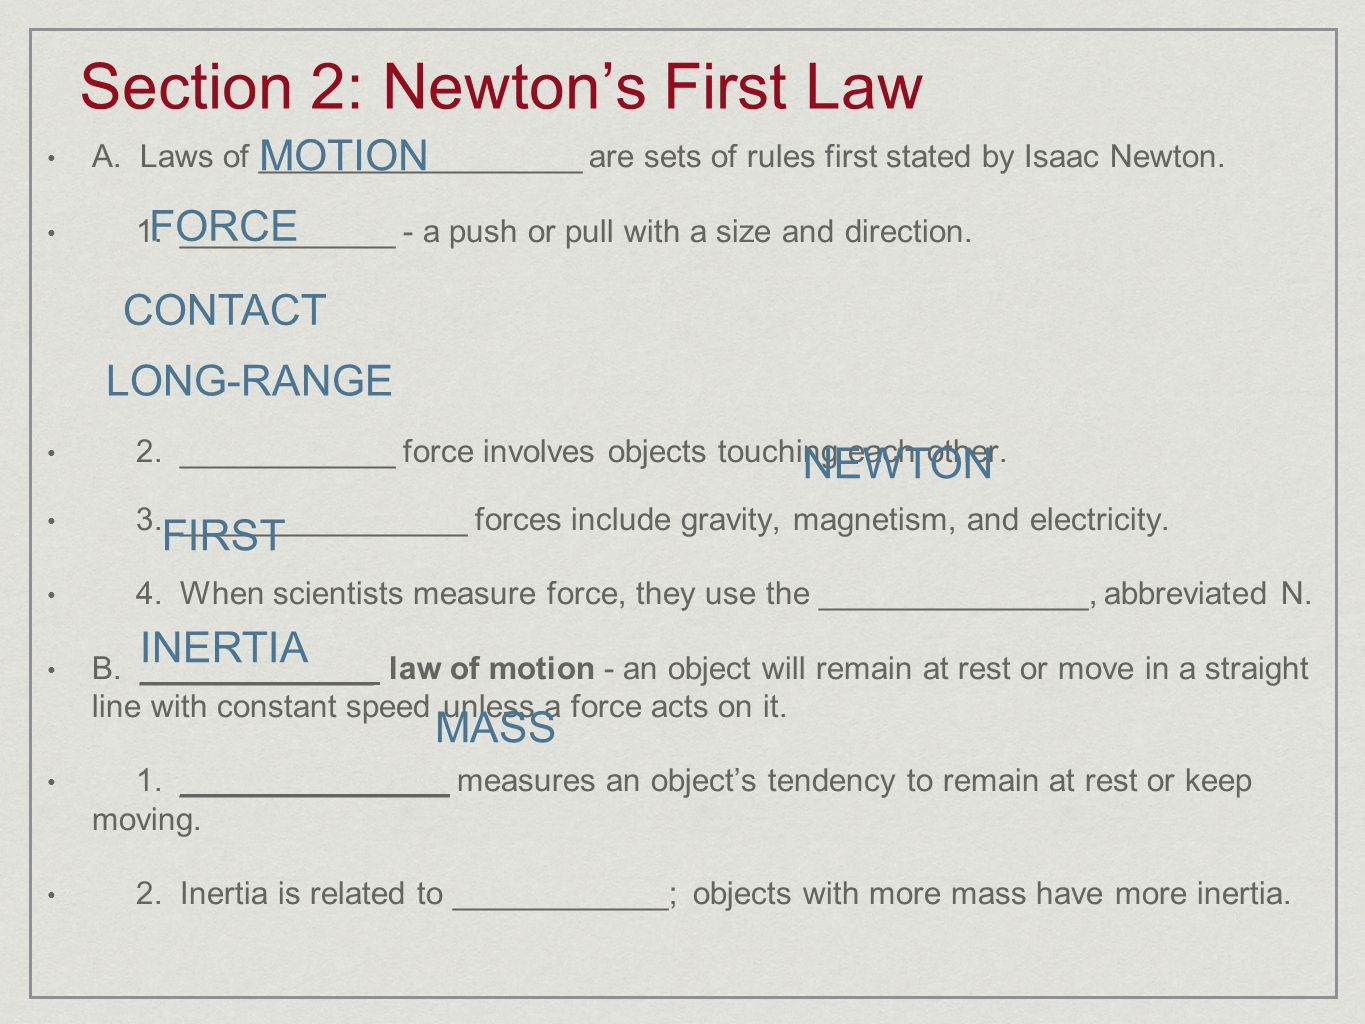 Newtons Laws Worksheet Answers 010 - Newtons Laws Worksheet Answers